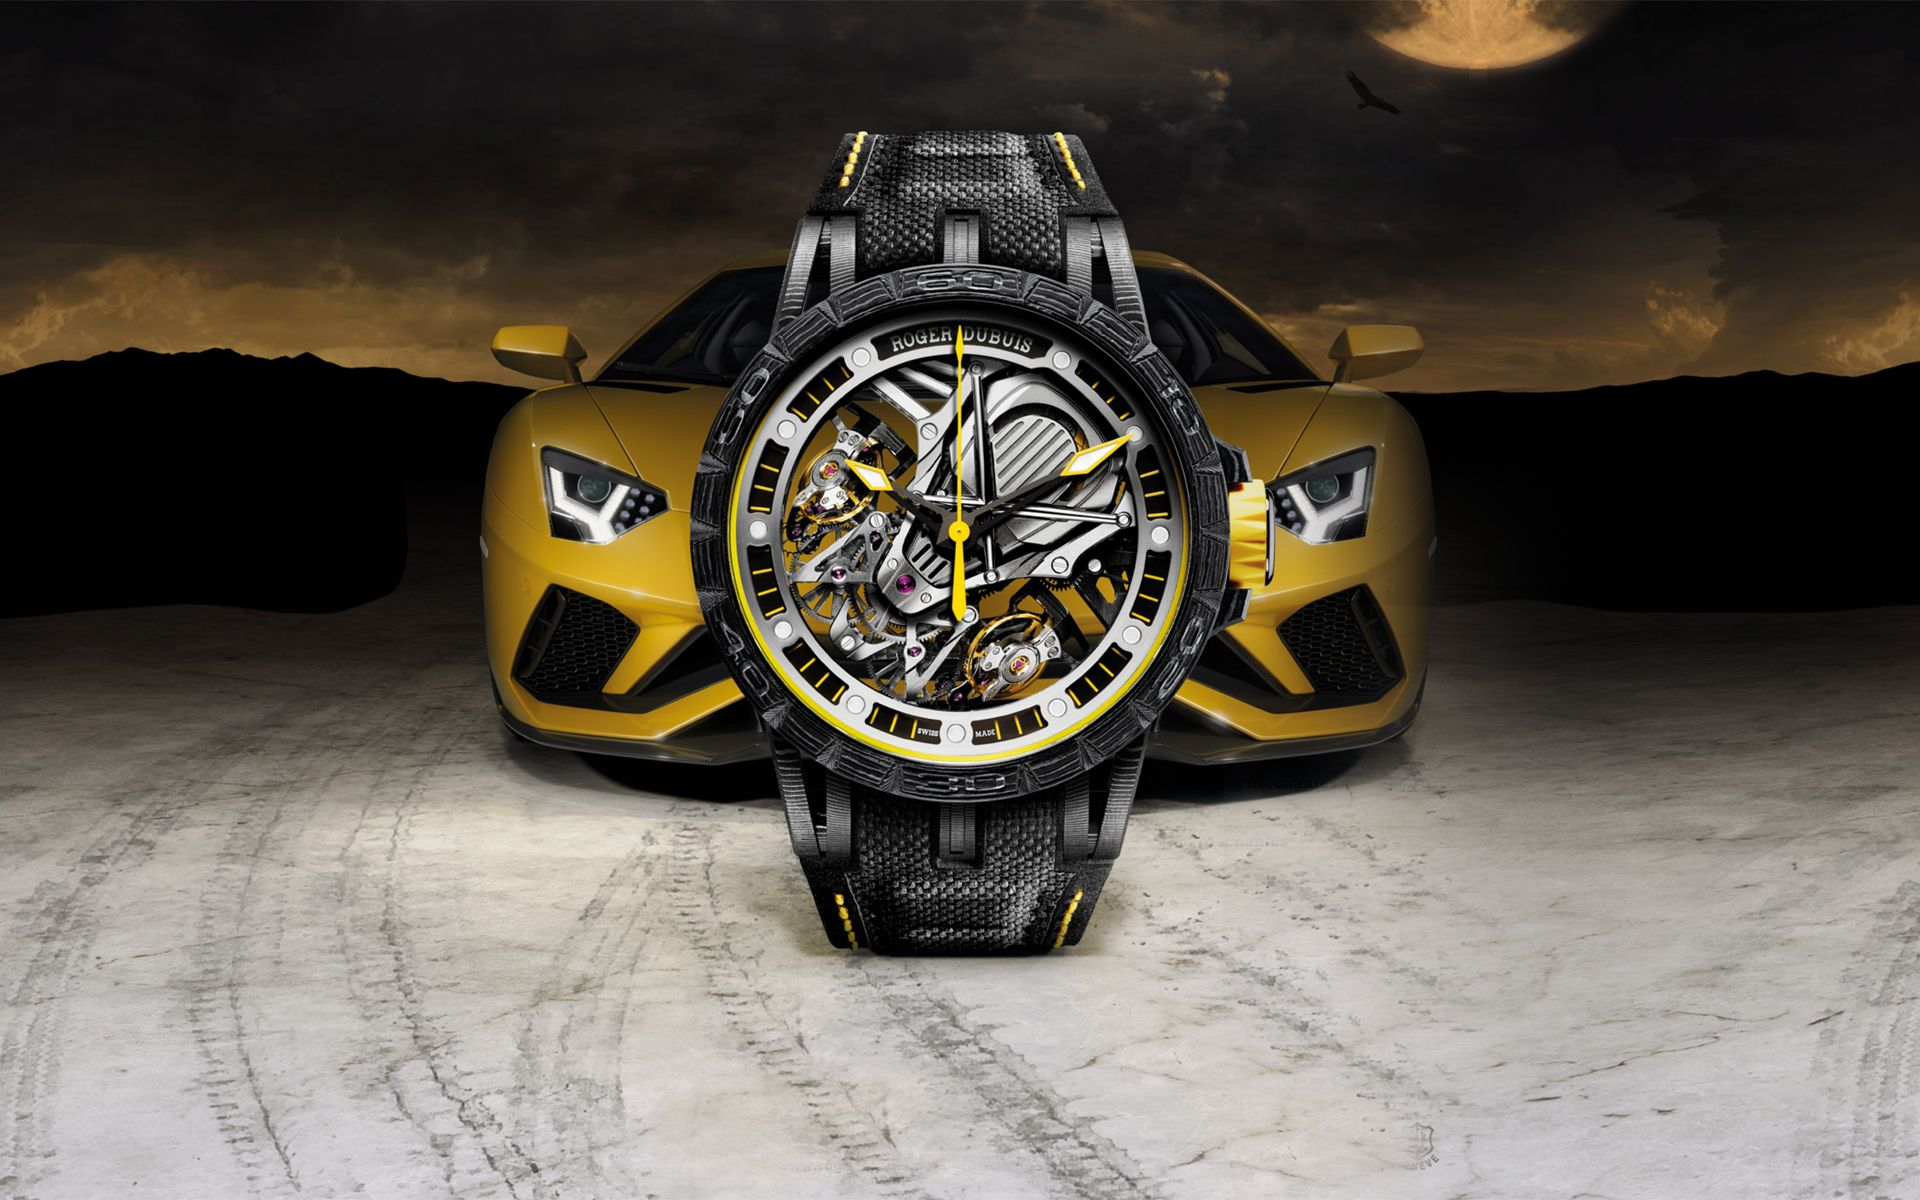 Treading Time: Roger Dubuis' Collaboration With Lamborghini